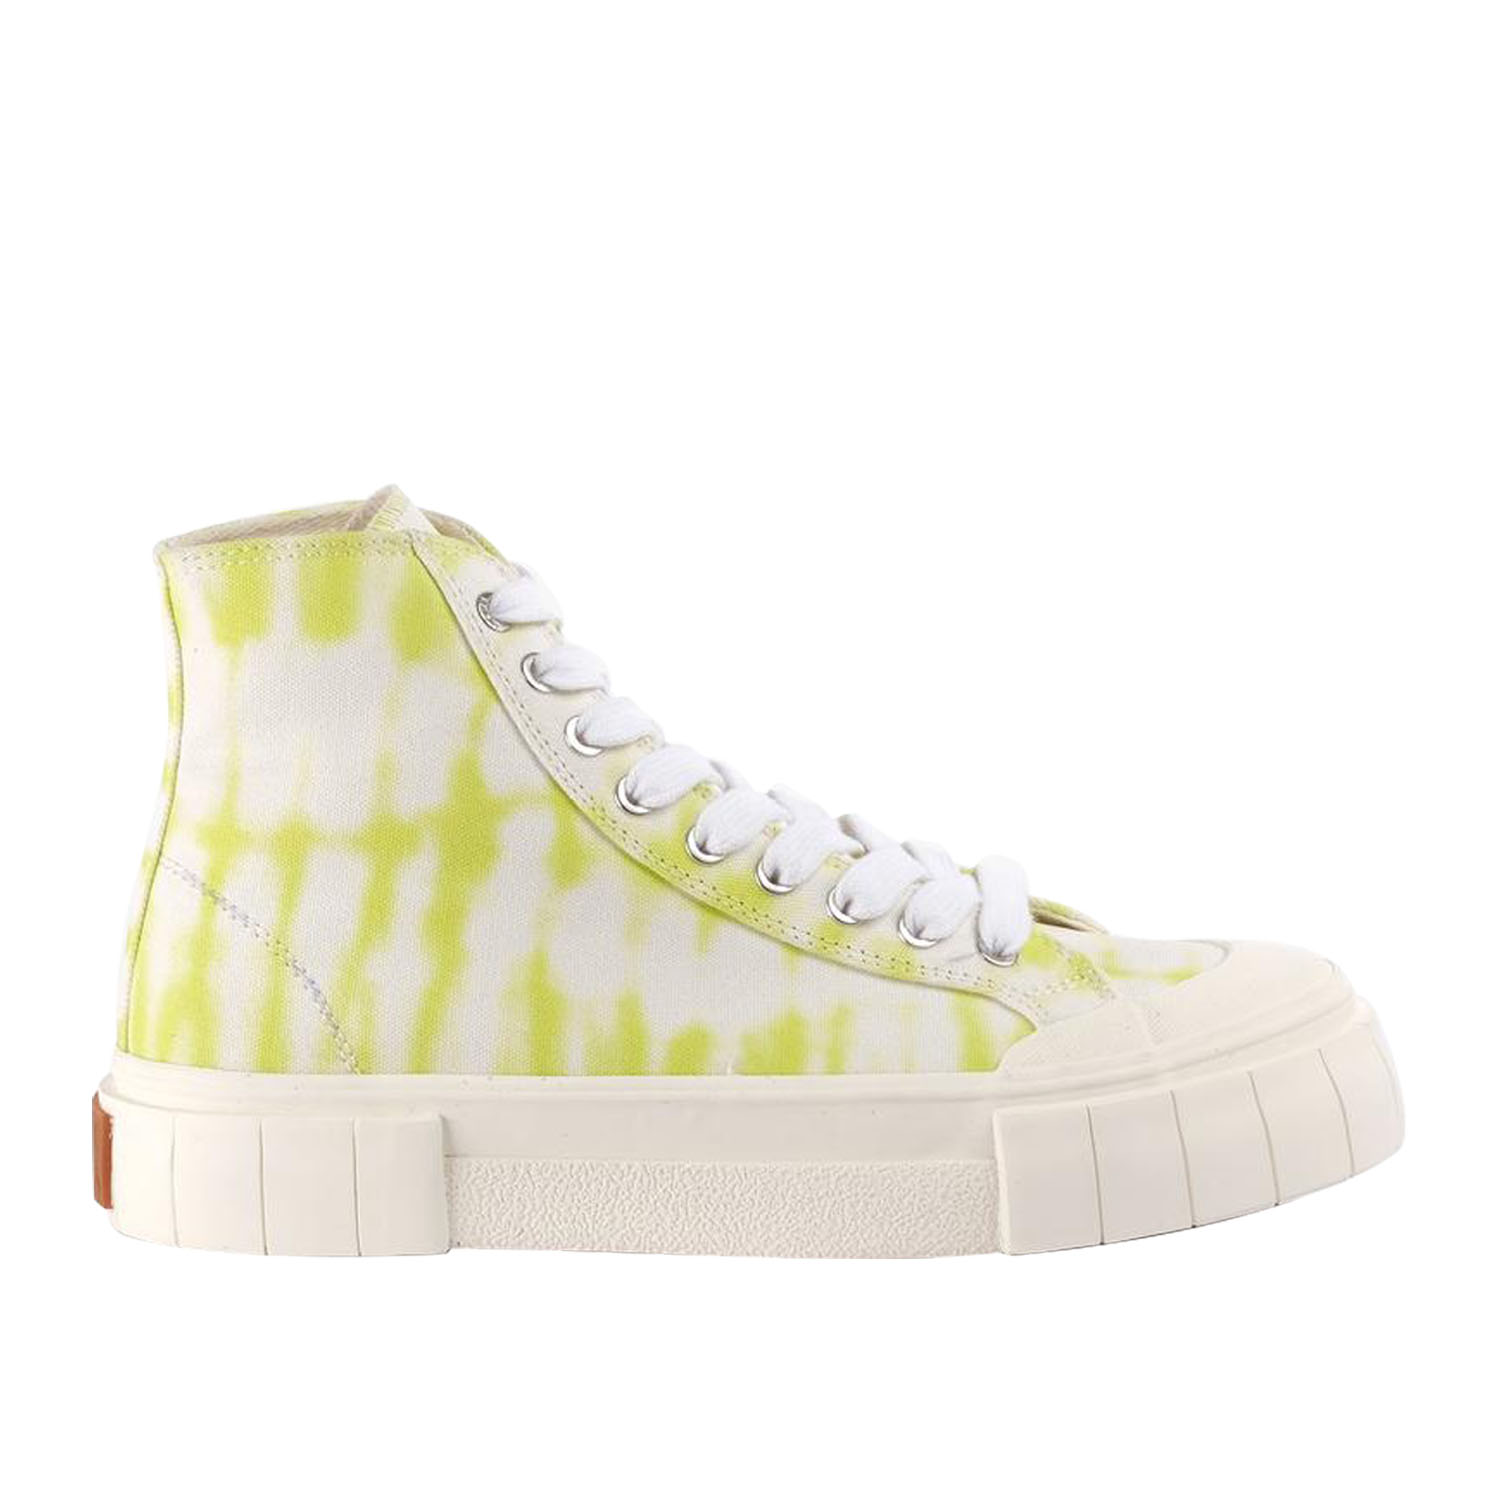 Good News Palm Ombre Lime High, 12 128 руб.